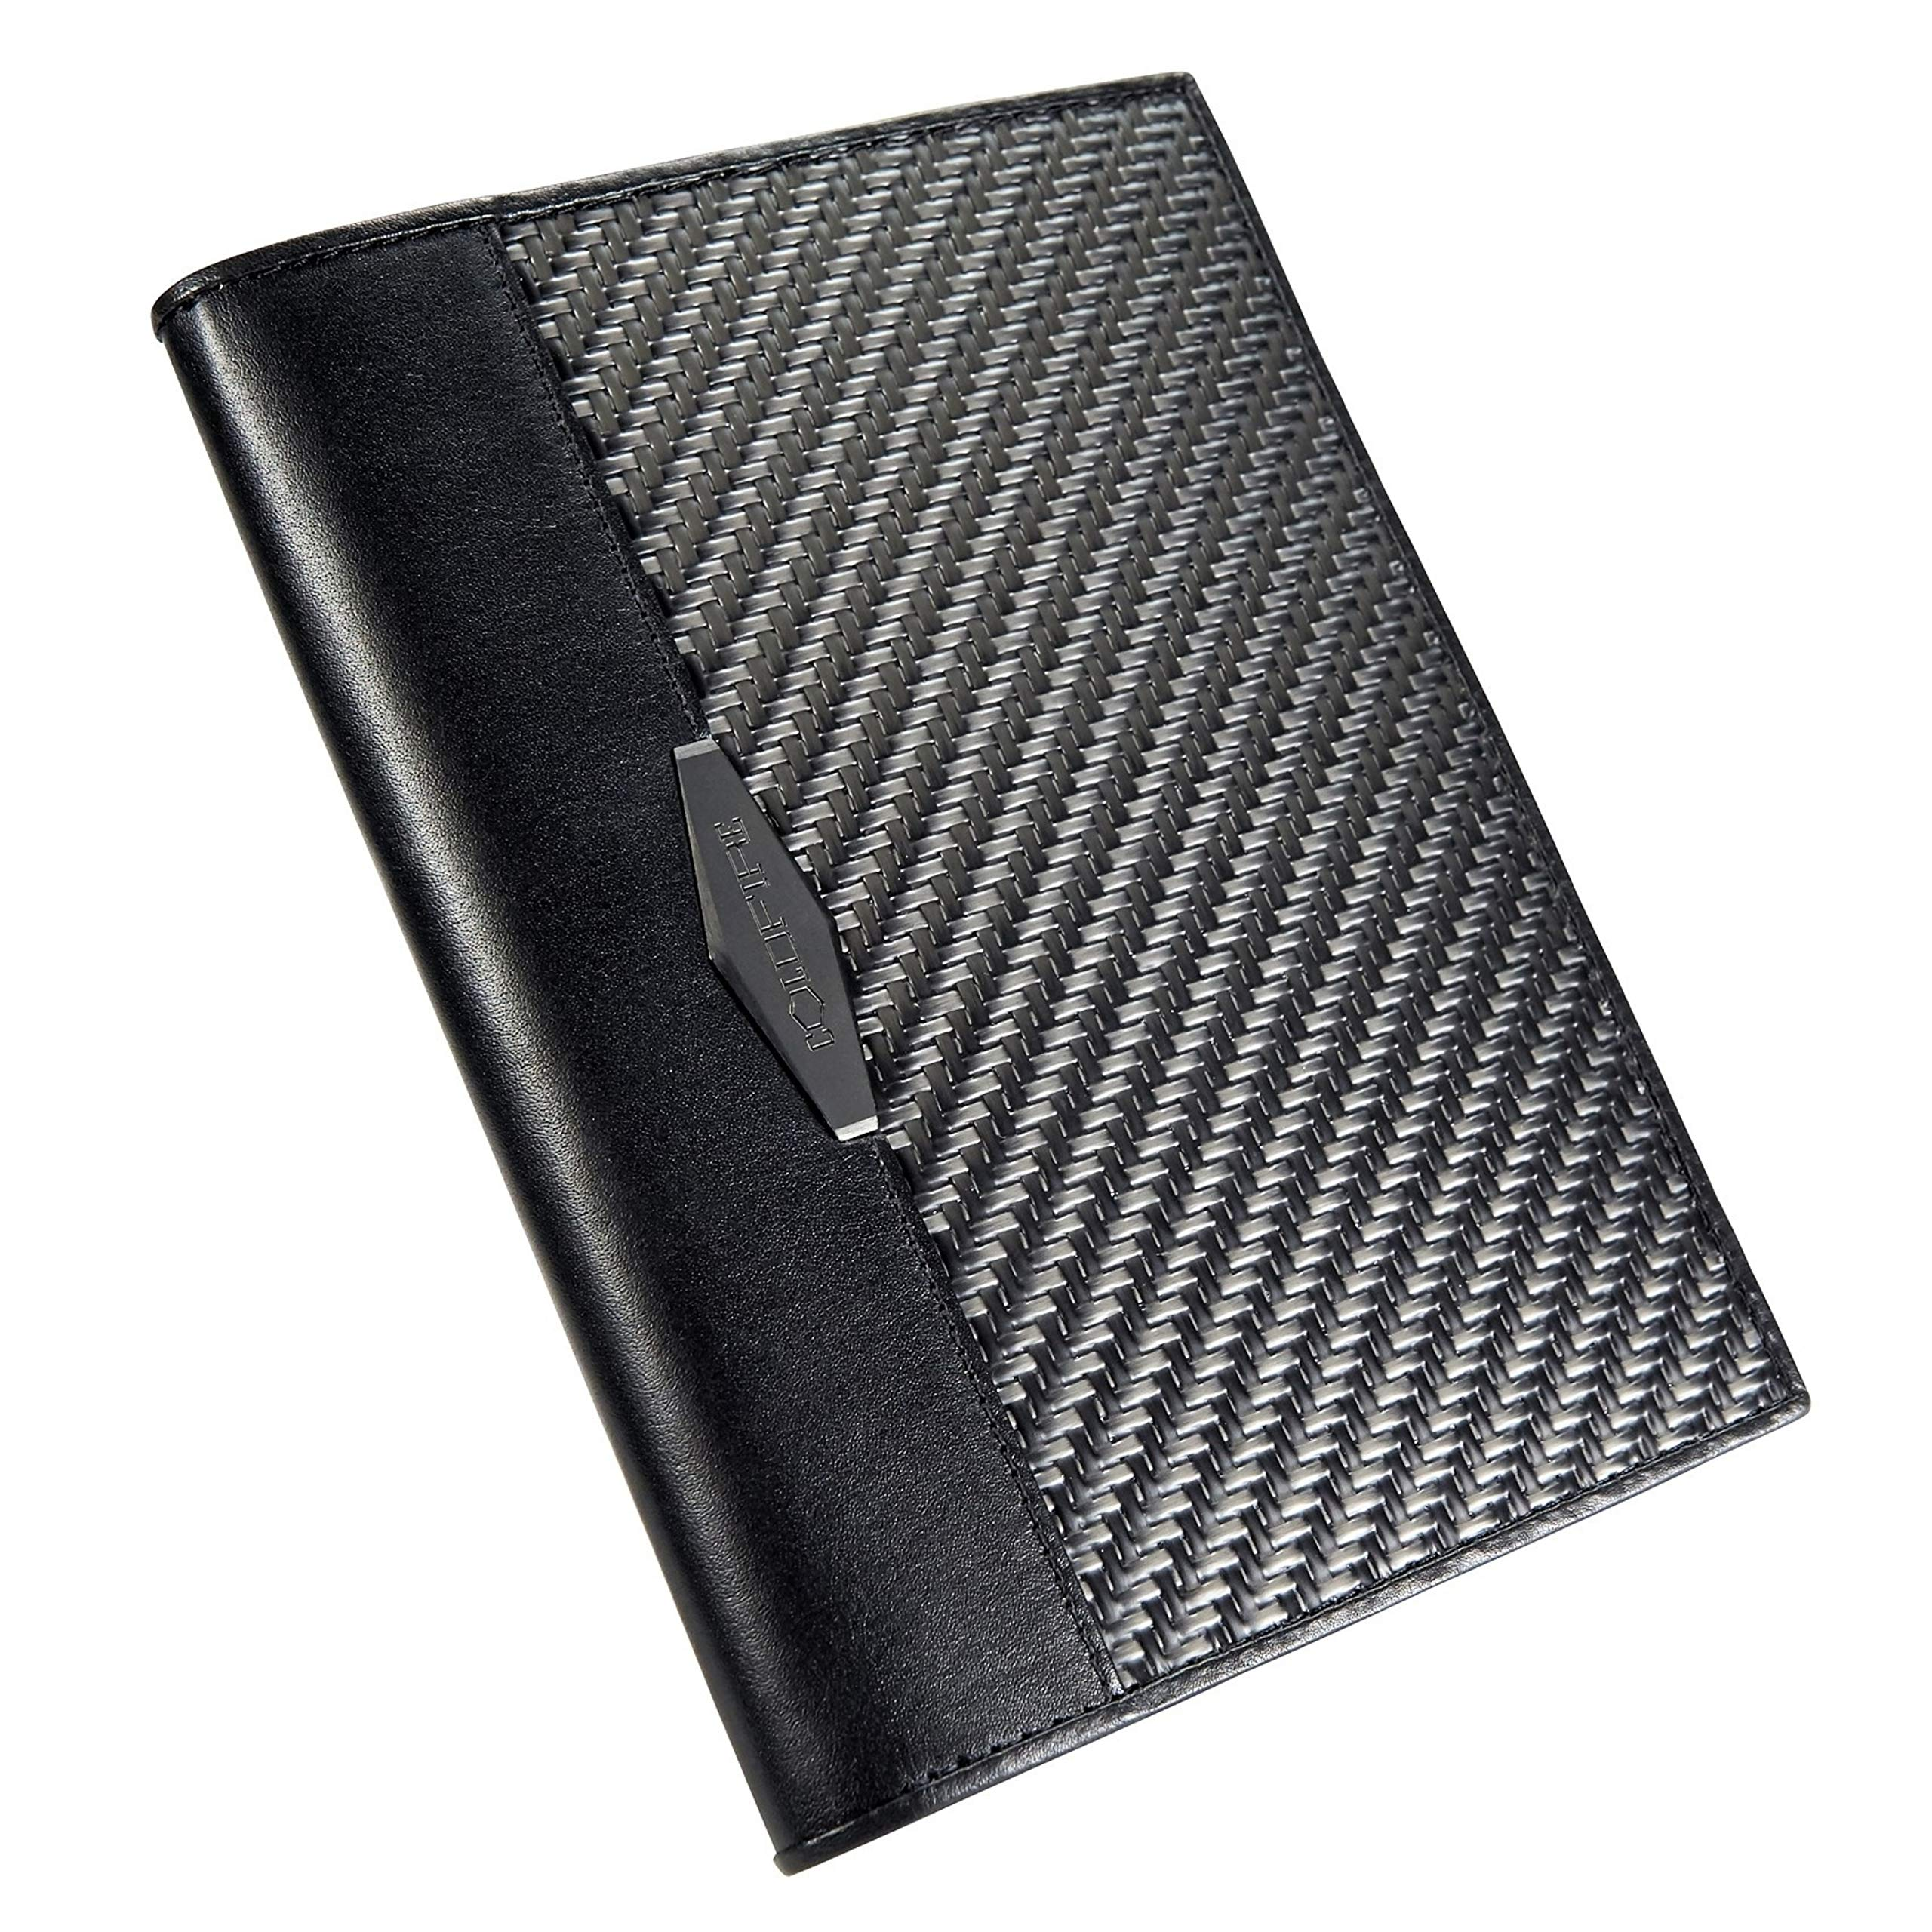 COLDFIRE Travel Wallet Passport Holder, Document Organizer case, Handcrafted from CX6 Carbon Fiber and Genuine Kangaroo leather, RFID blocking, Made in Europe!